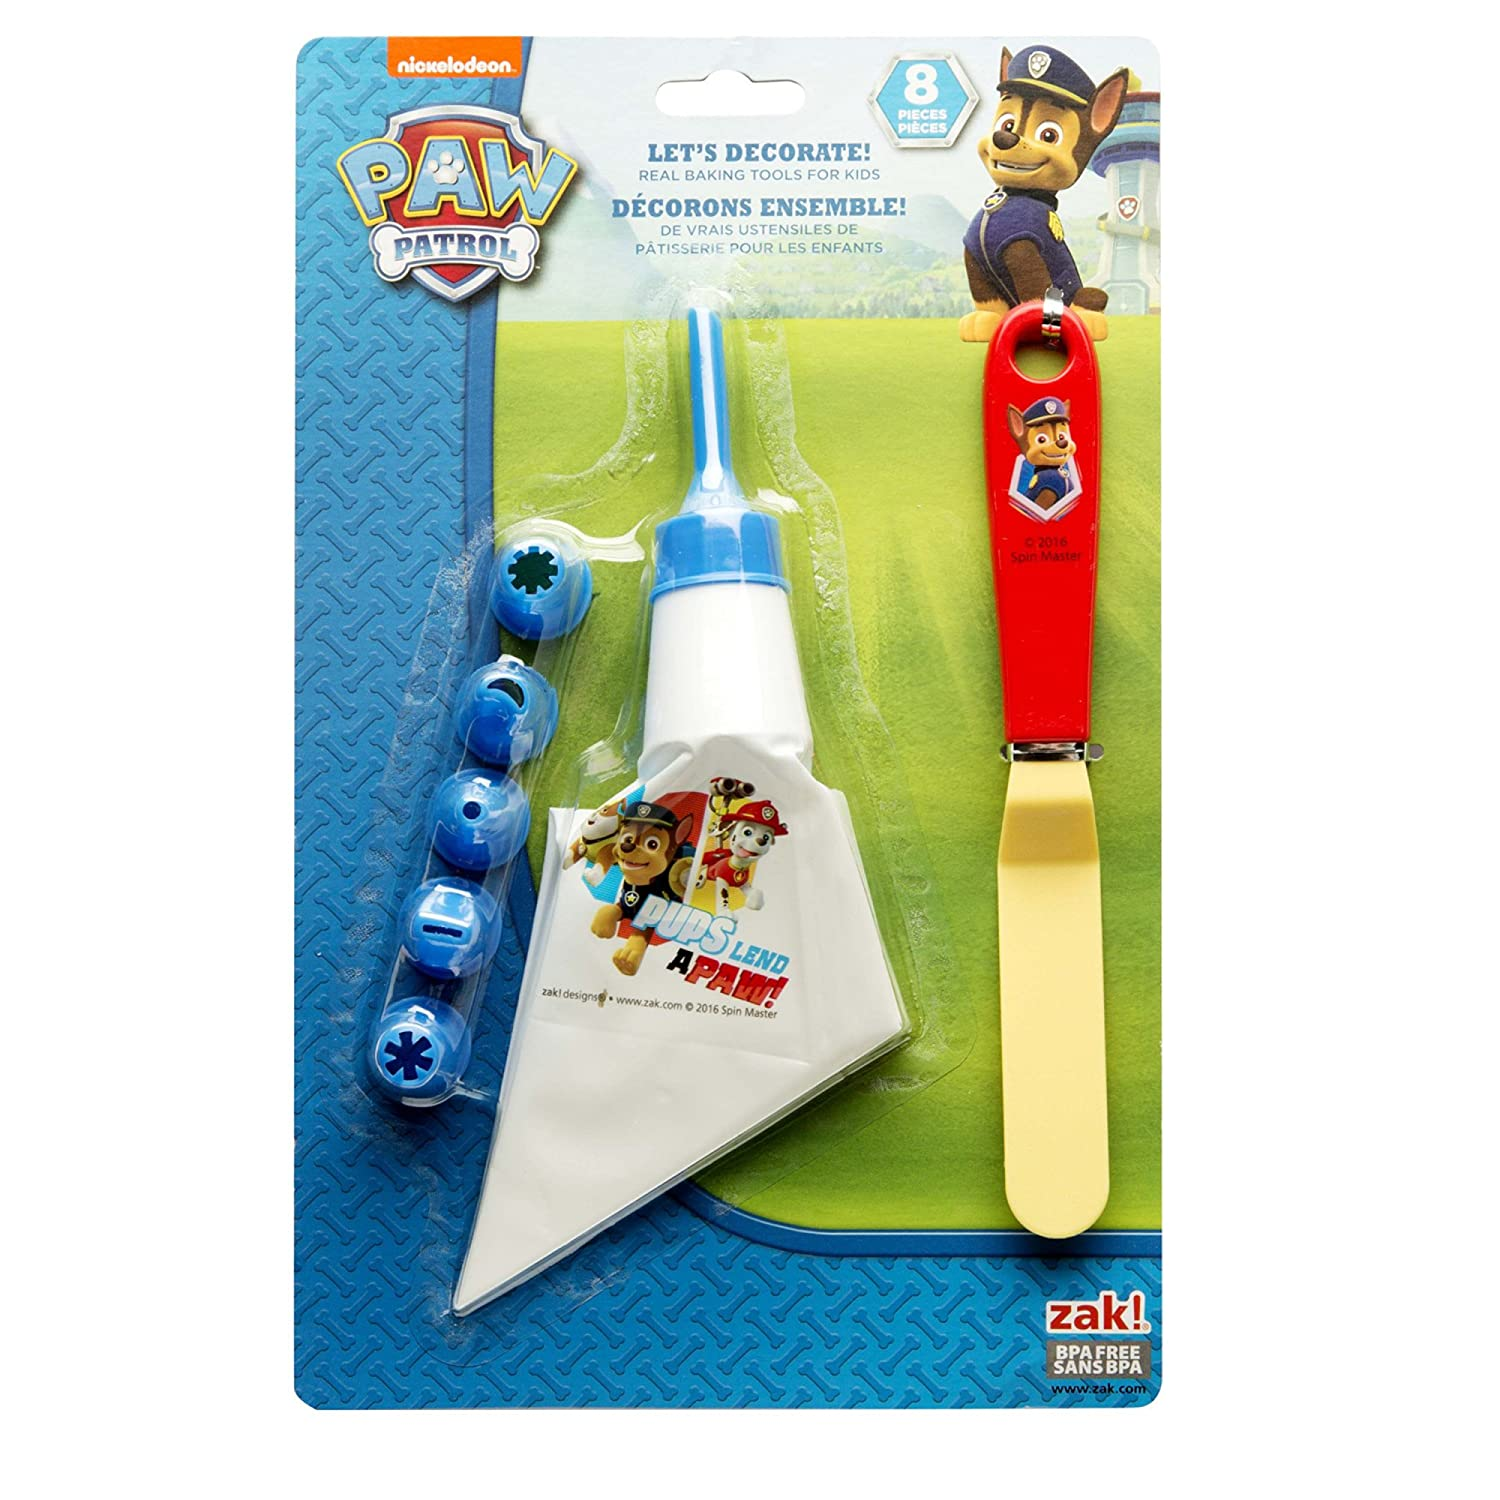 Zak Designs Lets Decorate! Frosting Bag and 6 Tips for Cooking with Kids, Paw Patrol Nickelodeon PWPE-S090